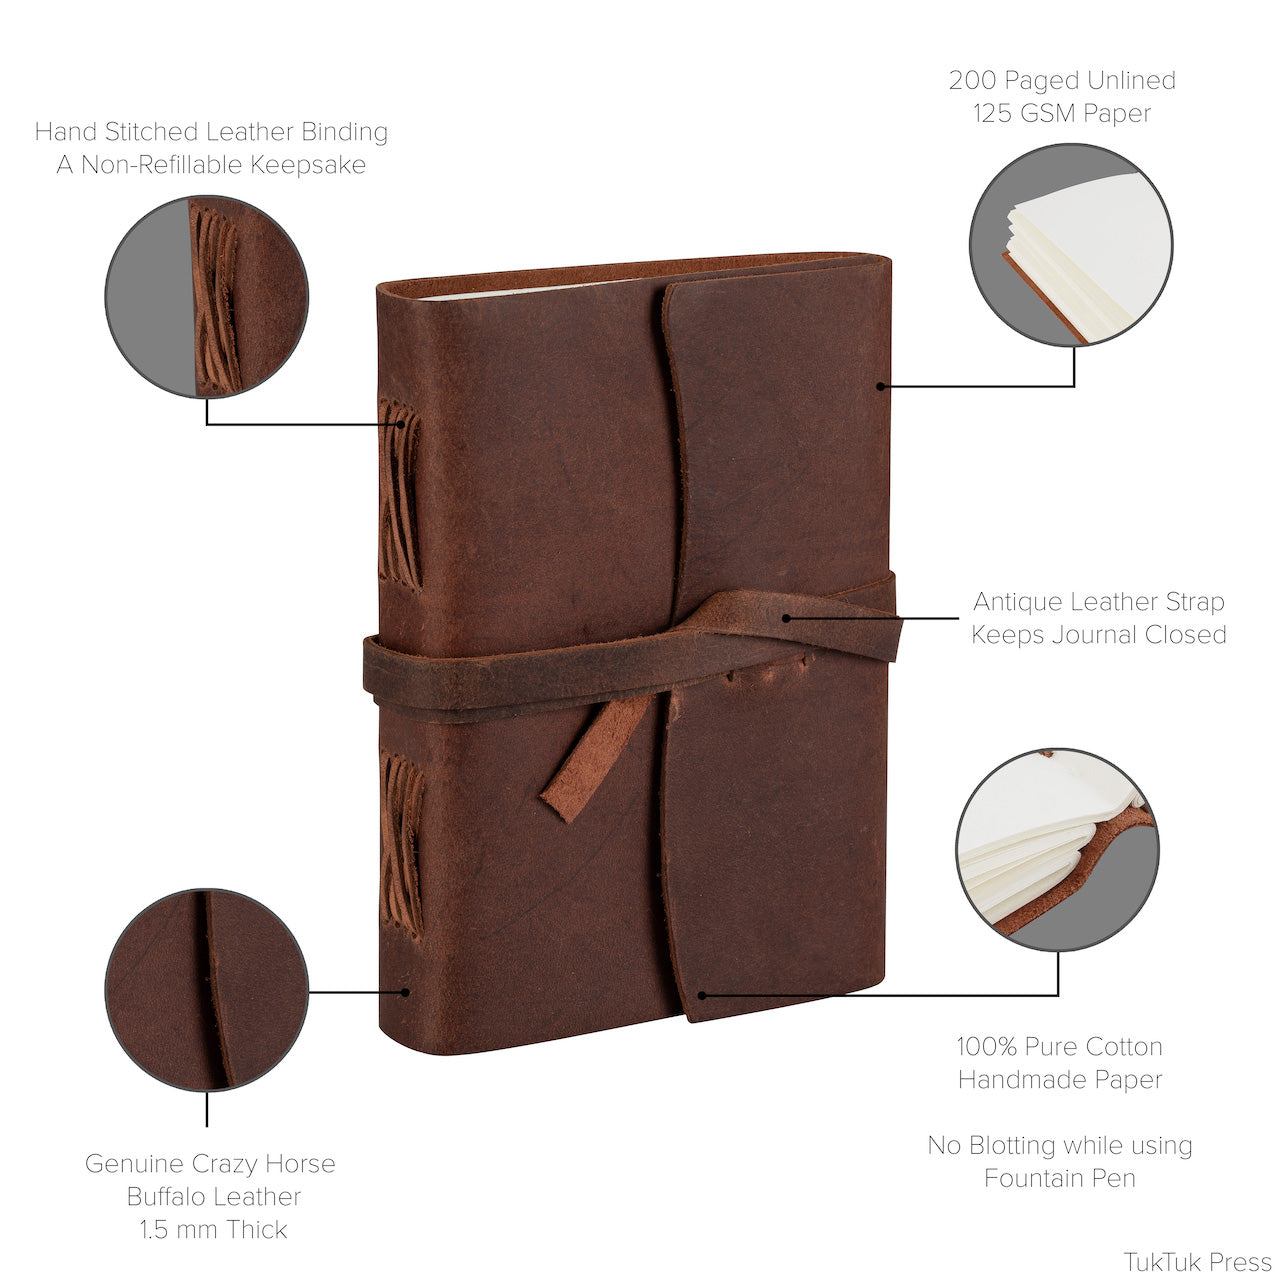 Handmade Leather Oil Journal, 200 Thick Unlined Recycled Cotton Pages